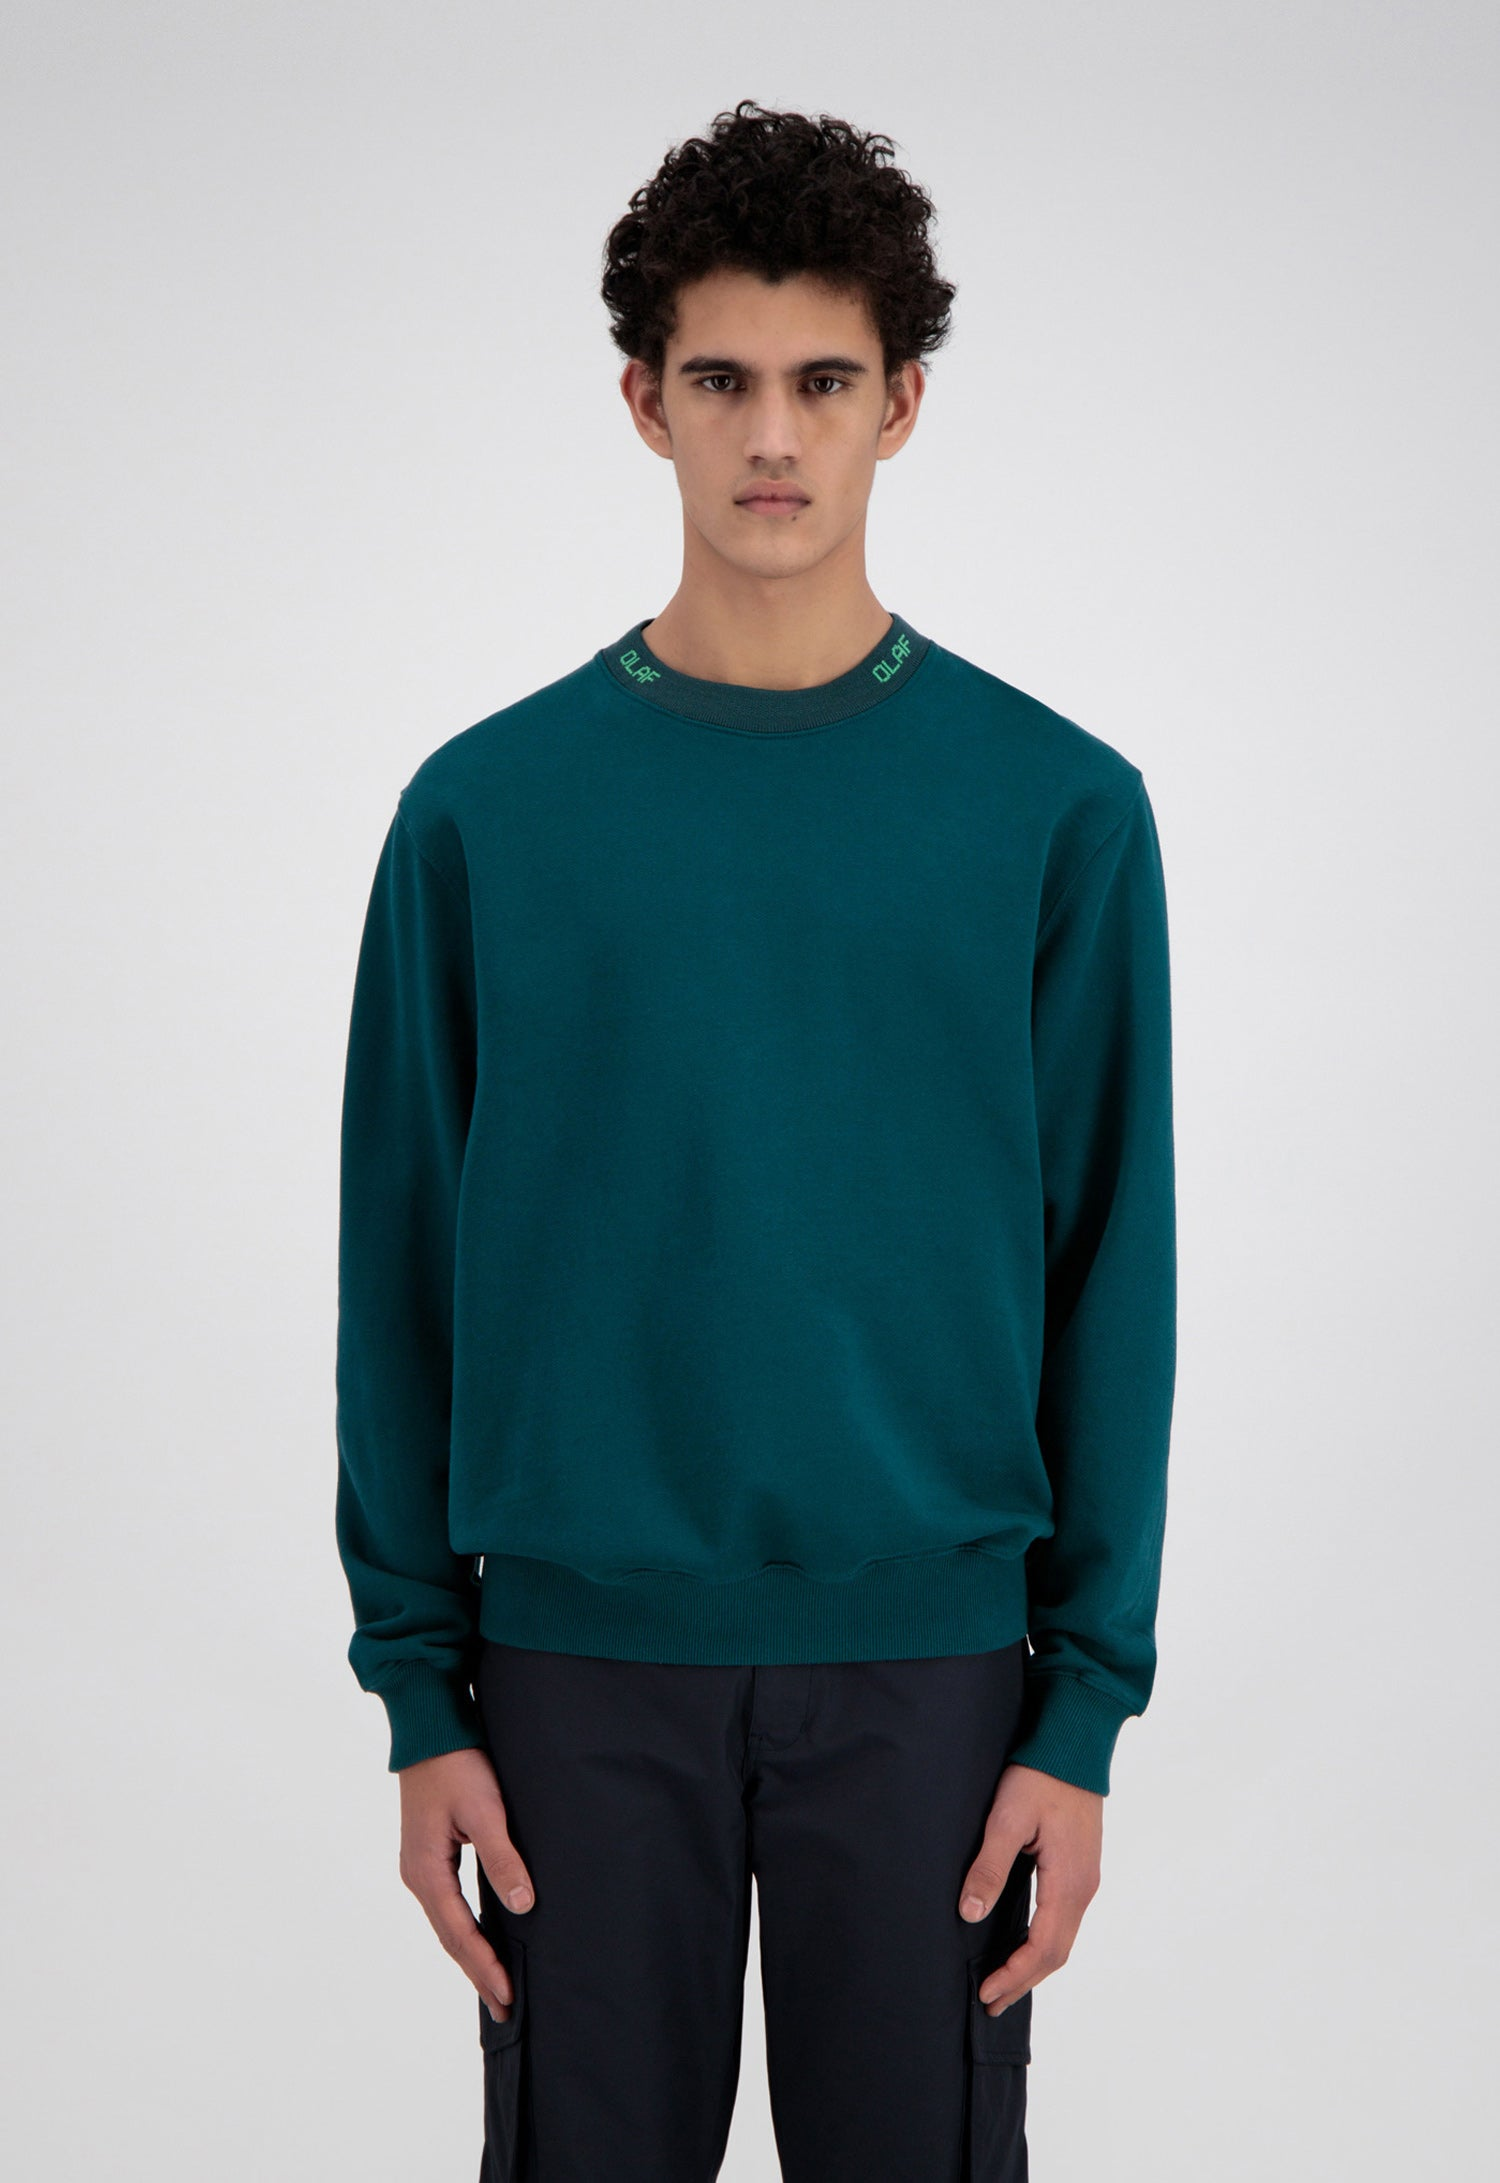 ØLÅF Branded Rib Crewneck <br>Dark Green